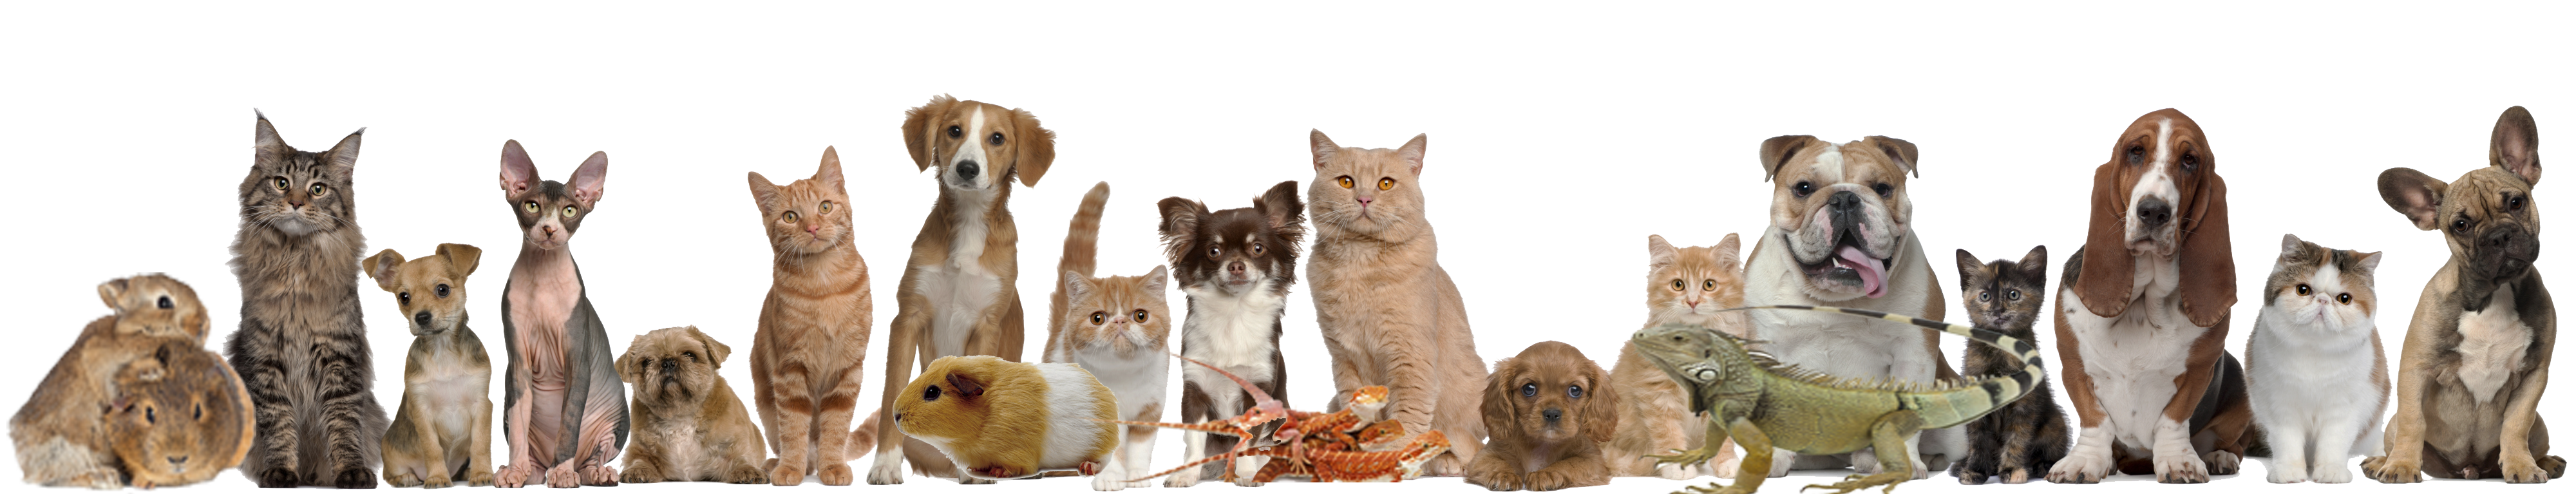 Buy And Sell New Or Used Pet Online Like Cat Dog Rabbit Parrot Etc On 100orless Classified Site In Toronto Gta Ontario Canada With Free Classifieds